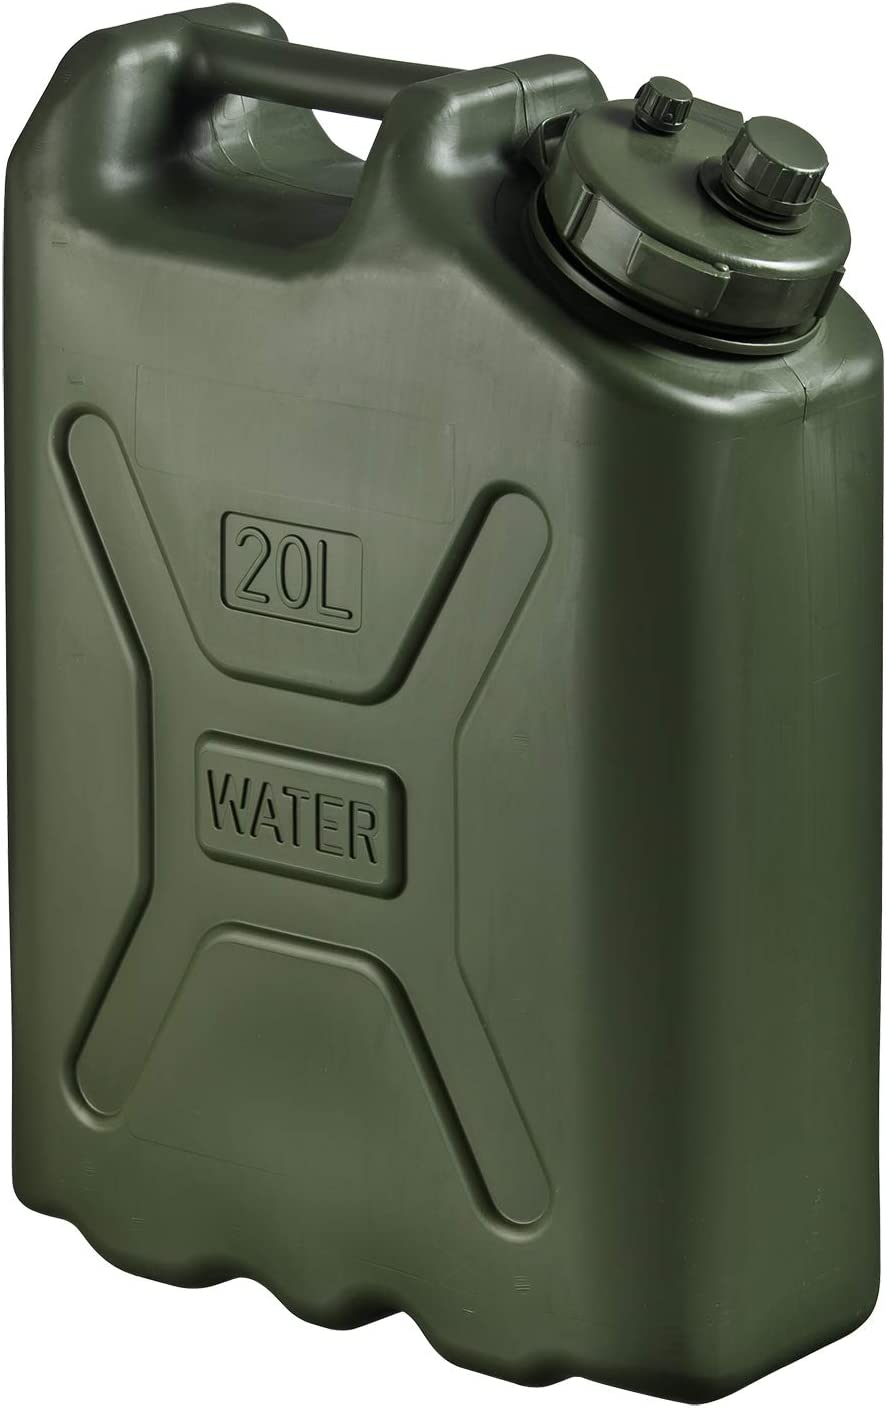 Scepter 5 Gallon True Military BPA Free Water Container, Food Grade Water Jug for Camping and Emergency Storage, Green